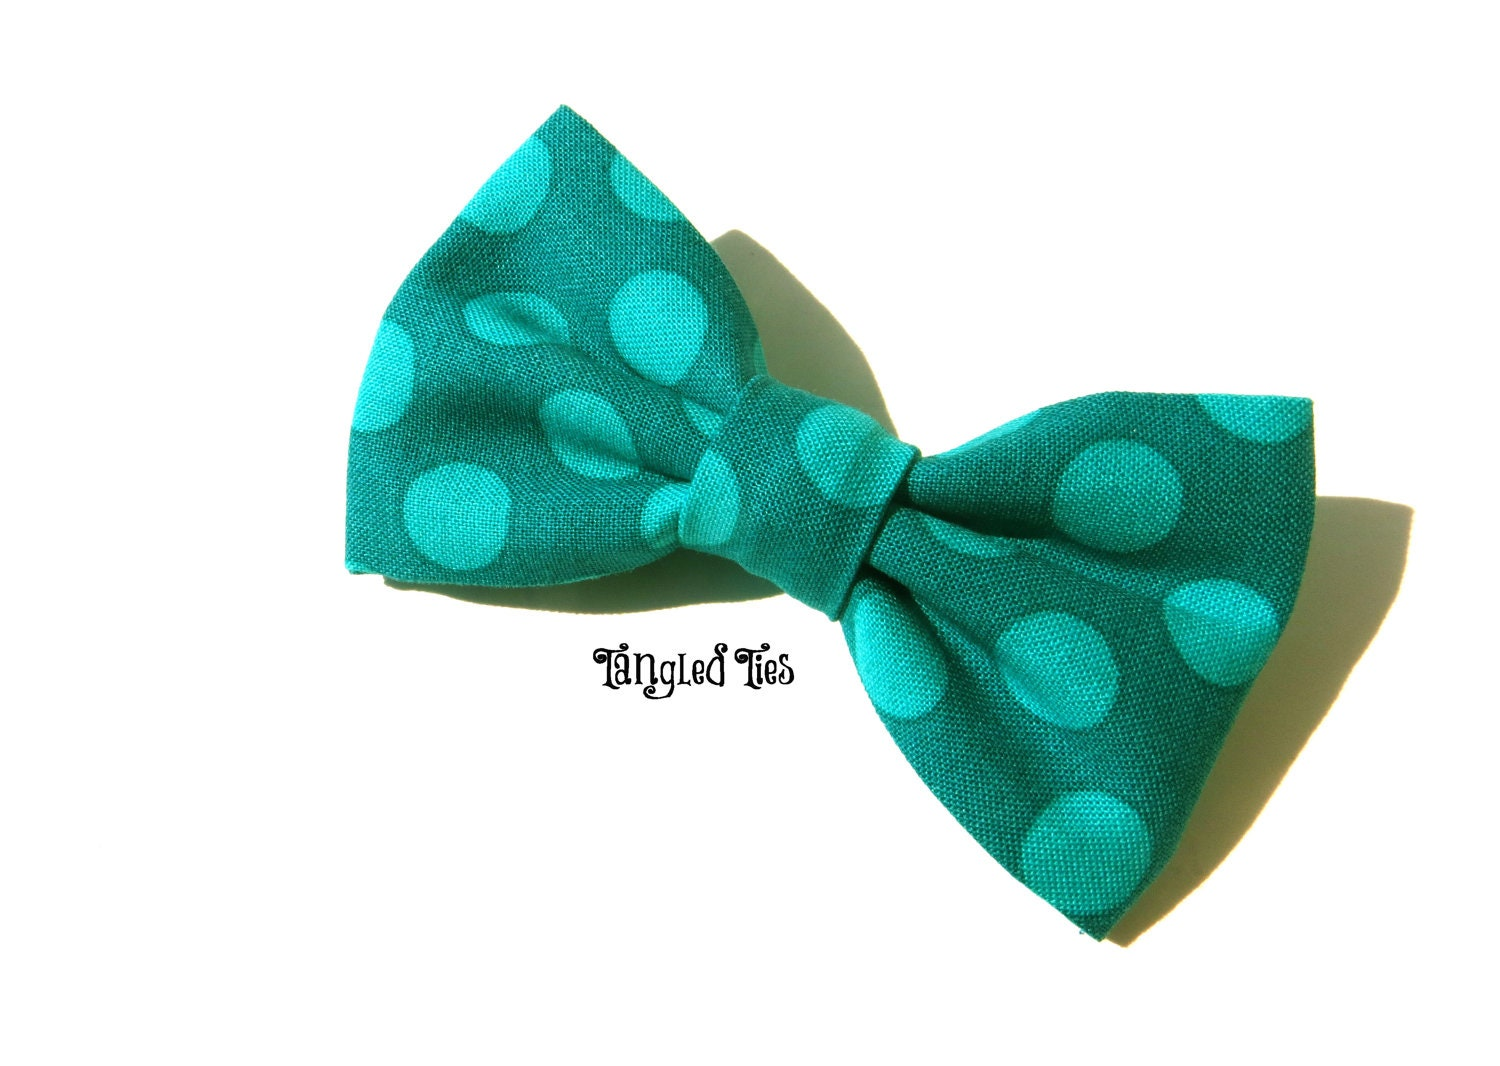 You searched for: teal boys tie! Etsy is the home to thousands of handmade, vintage, and one-of-a-kind products and gifts related to your search. No matter what you're looking for or where you are in the world, our global marketplace of sellers can help you find unique and affordable options. Let's get started!